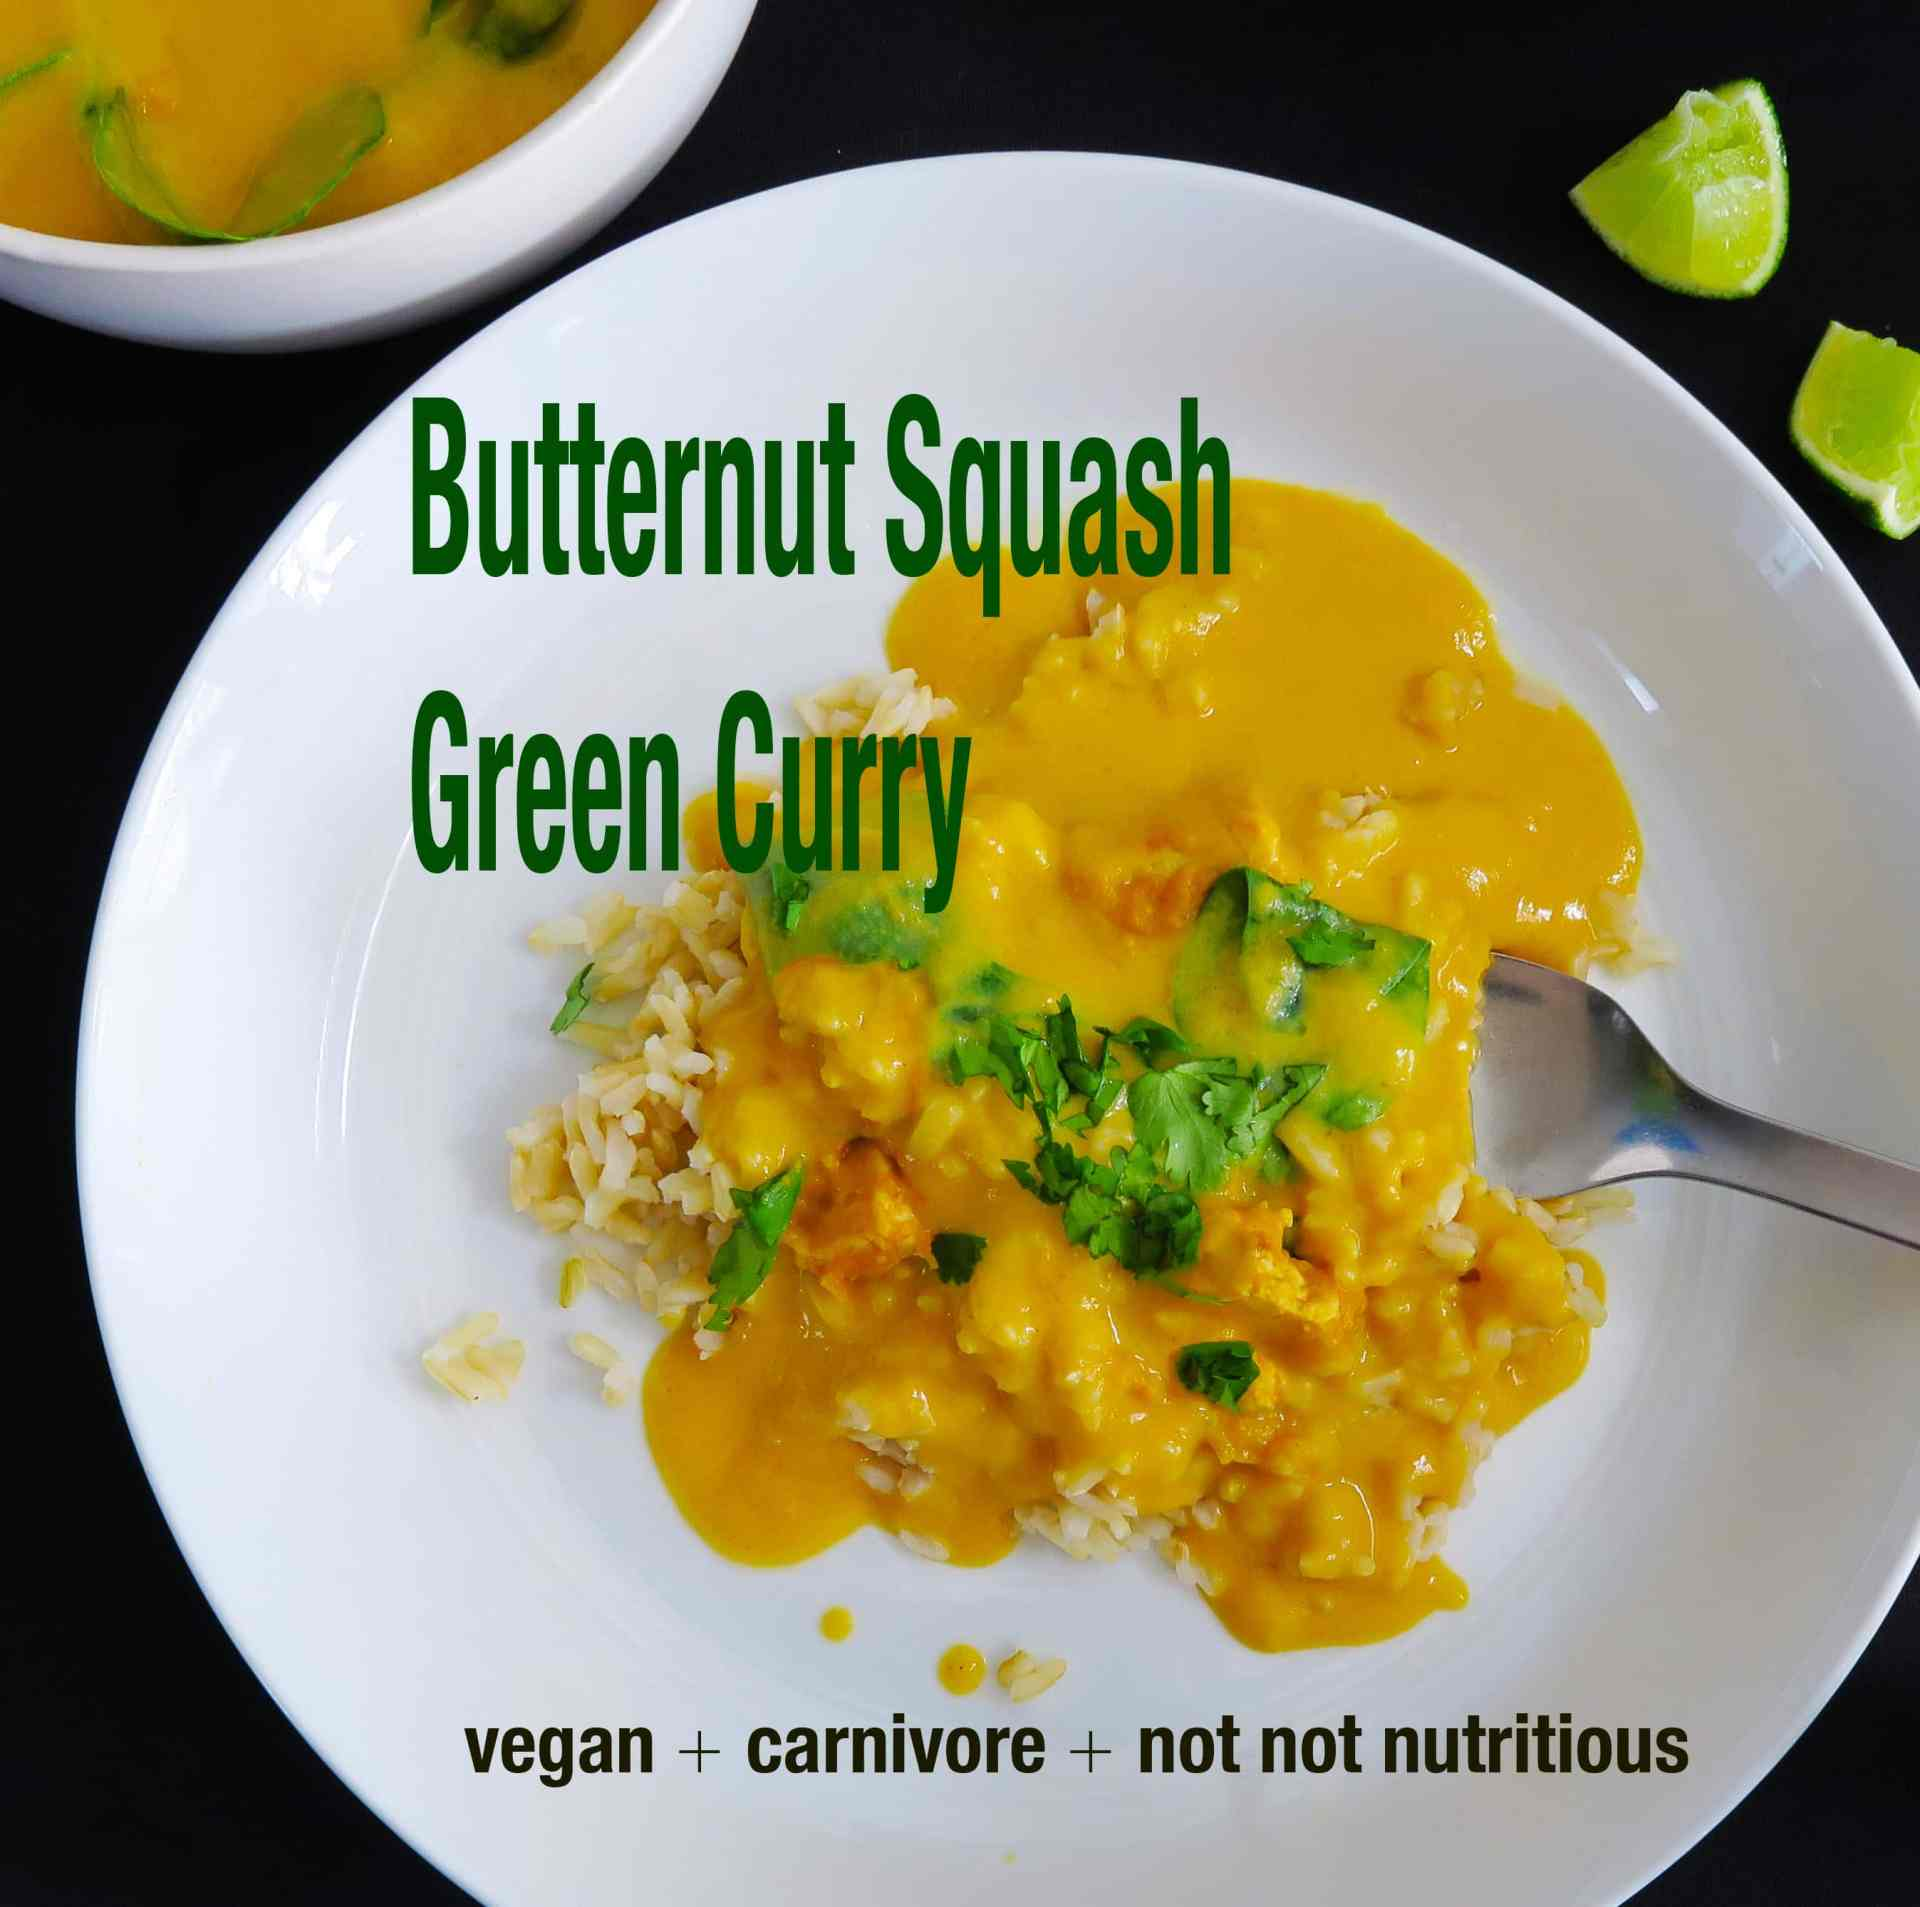 Butternut Squash Green Curry – Vegan and Omnivore Options